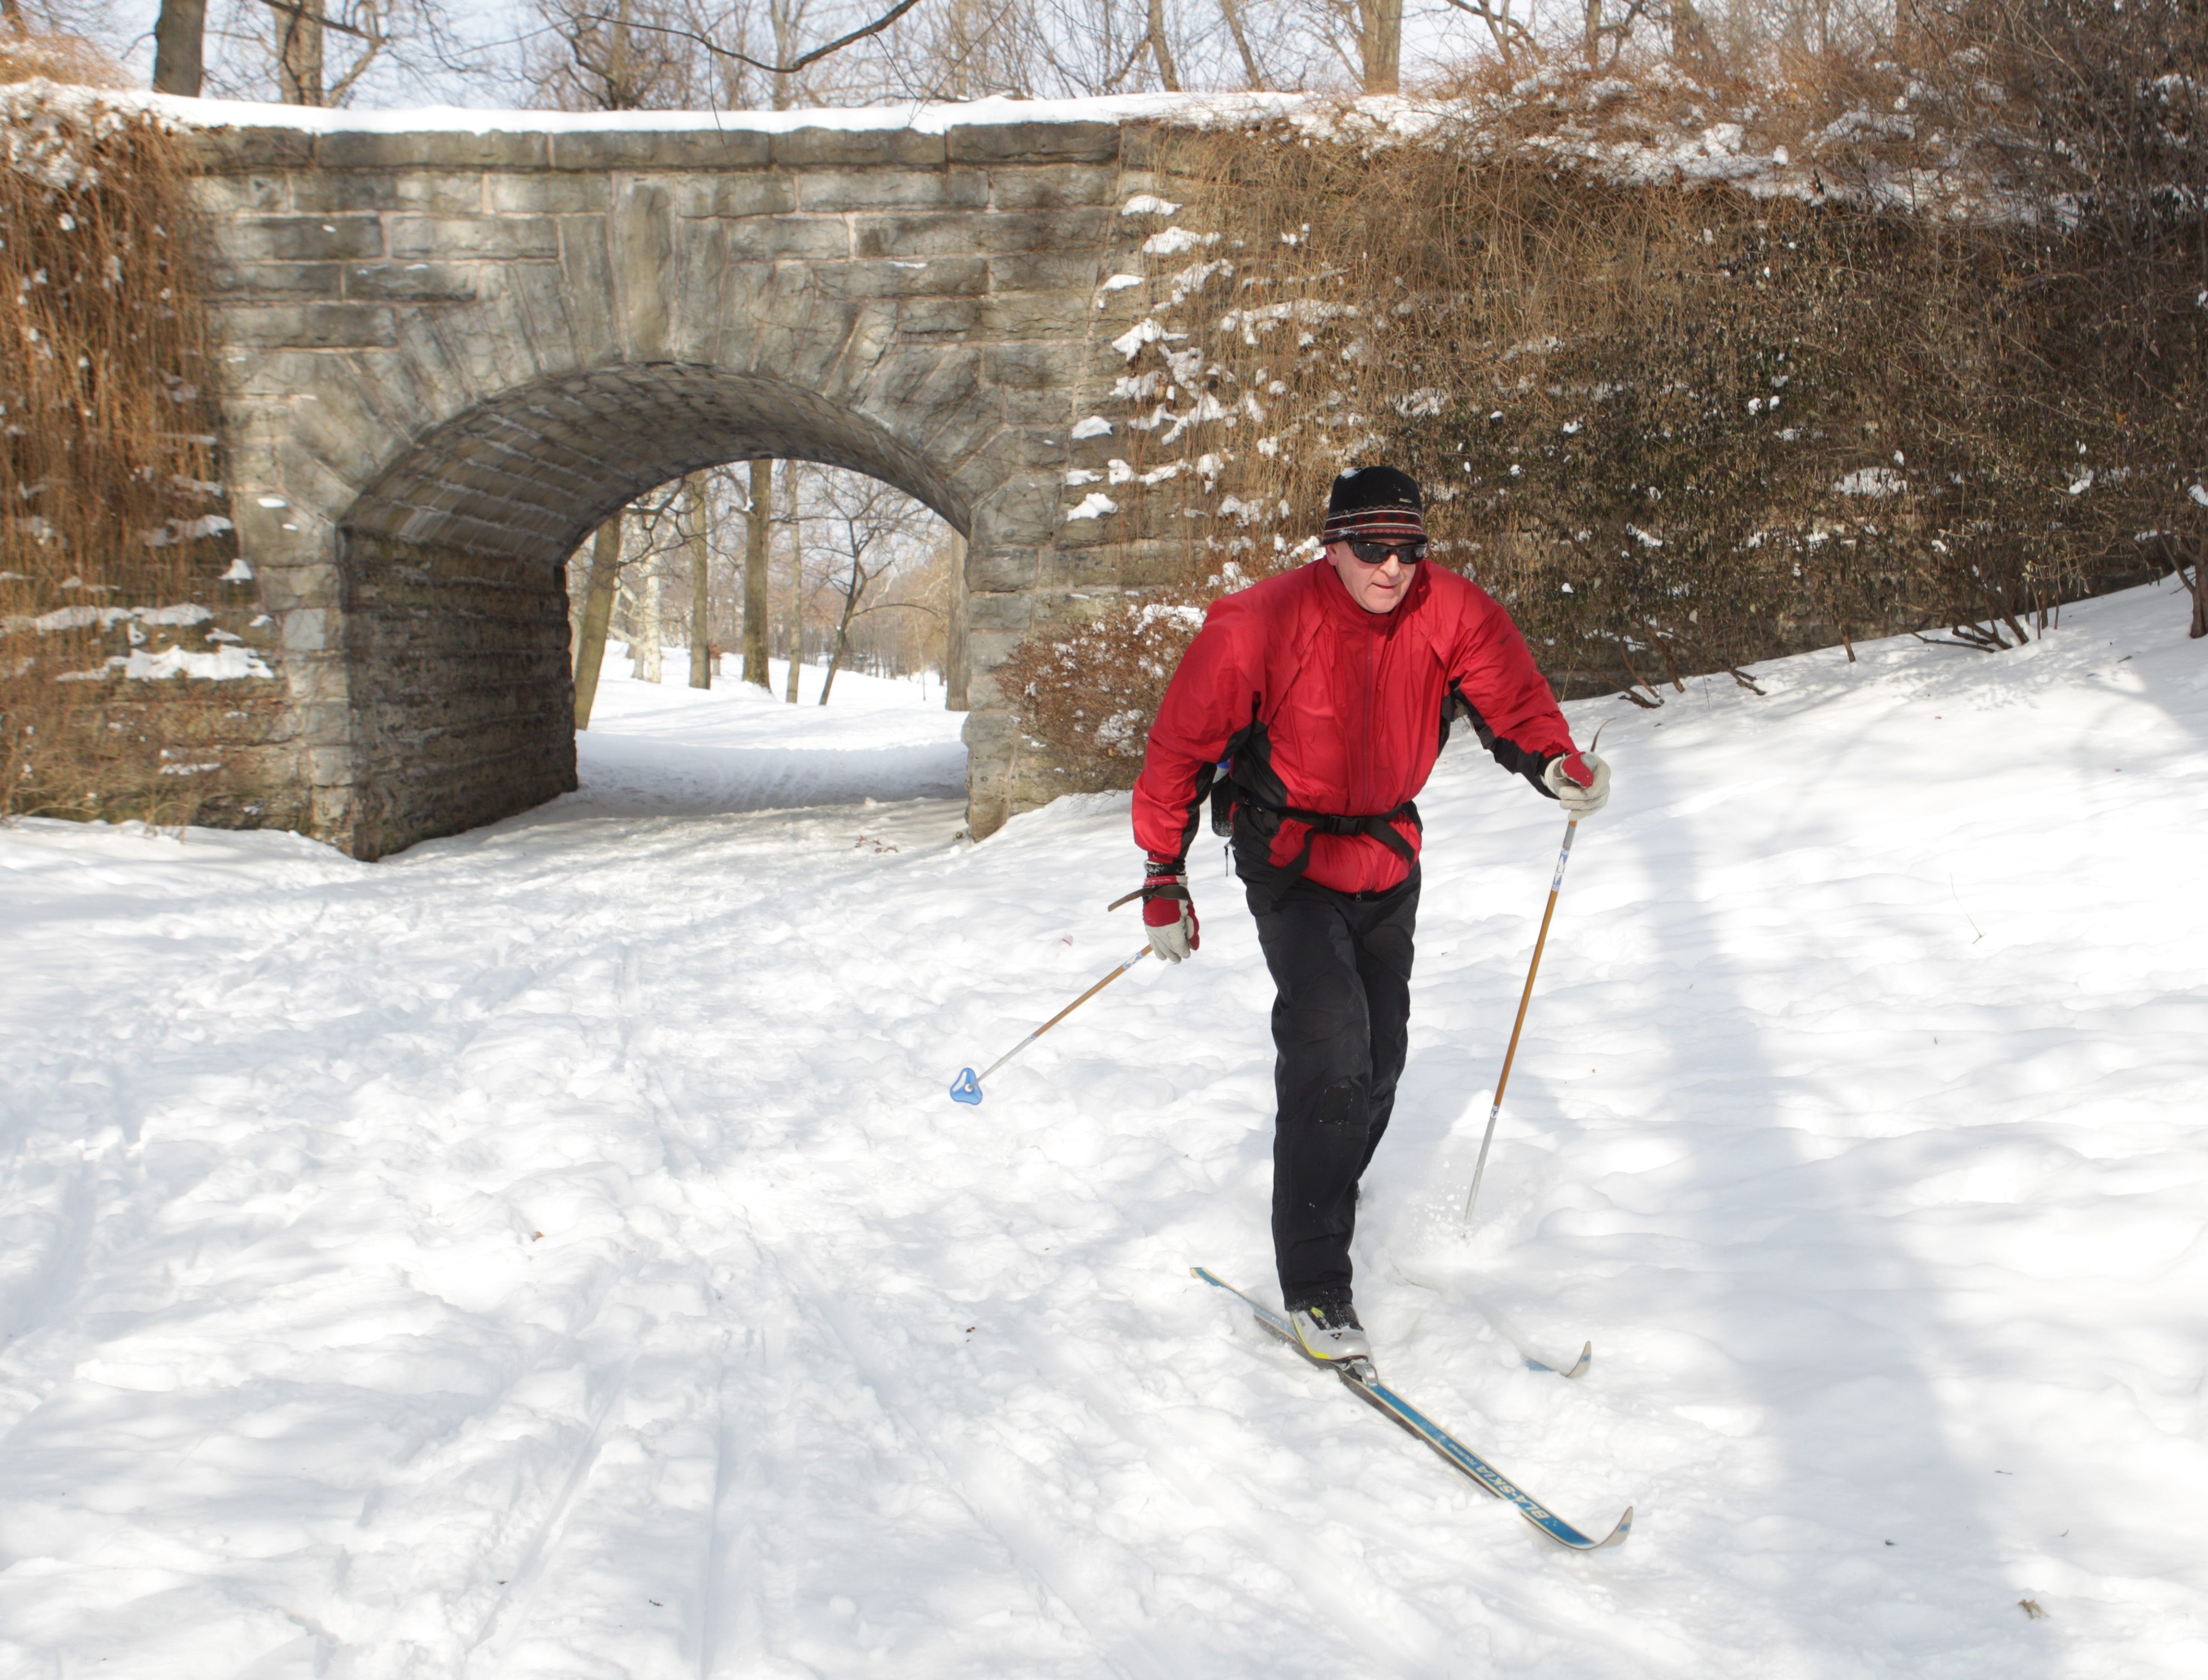 James Klein, president of the Buffalo Nordic Ski Club, gives free cross-country skiing lessons at 10 a.m. Sundays in Delaware Park.